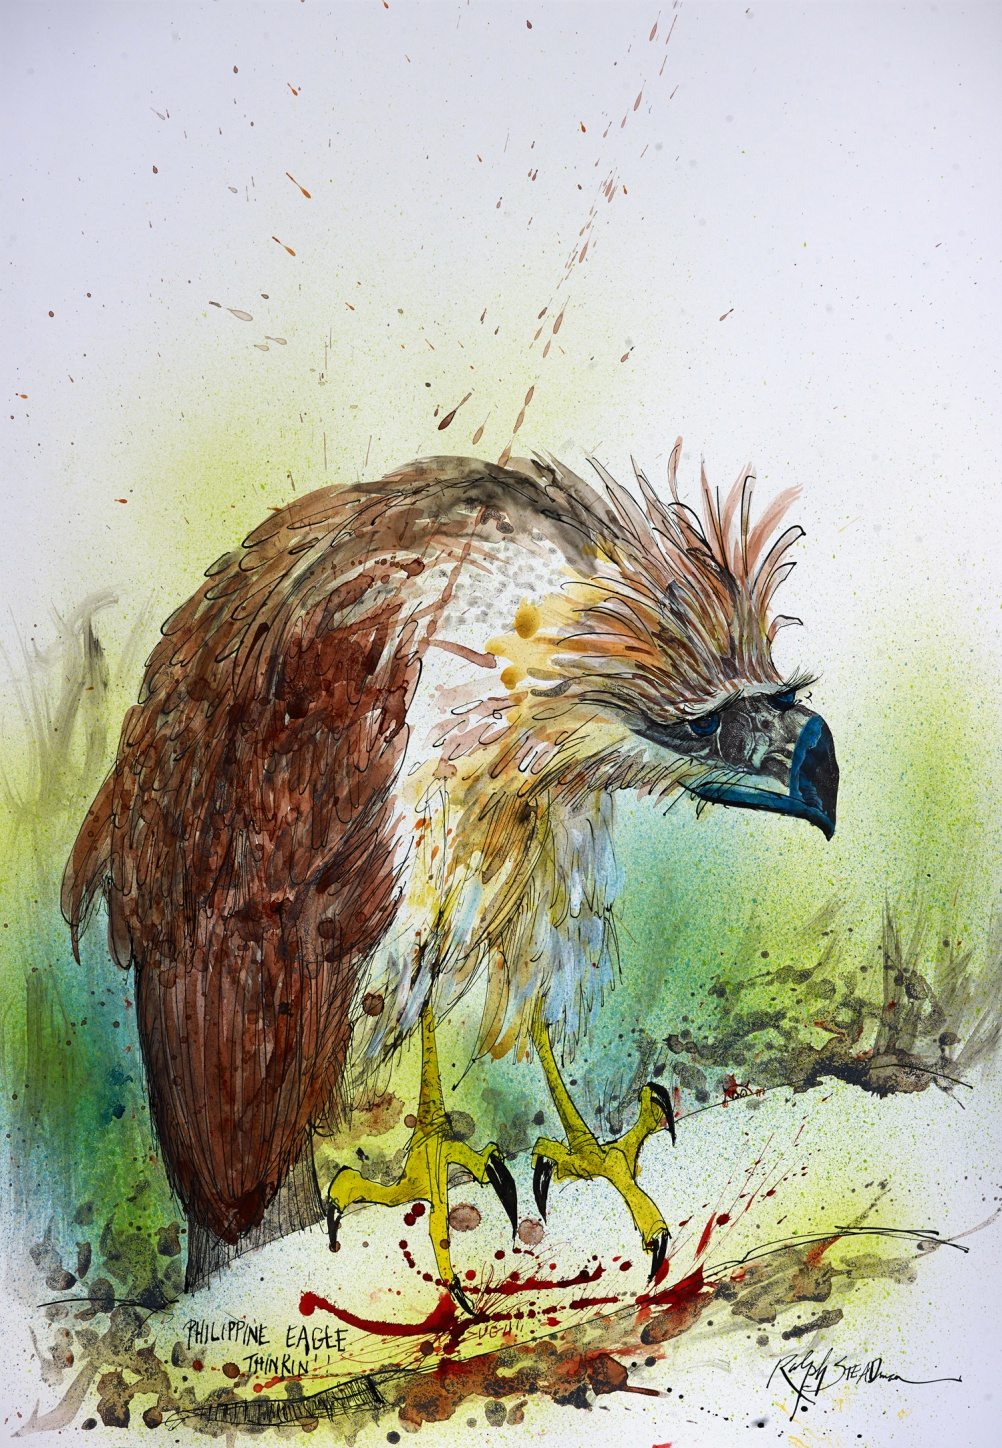 NEXTINCTIONS Philippine Eagle Thinking 521039